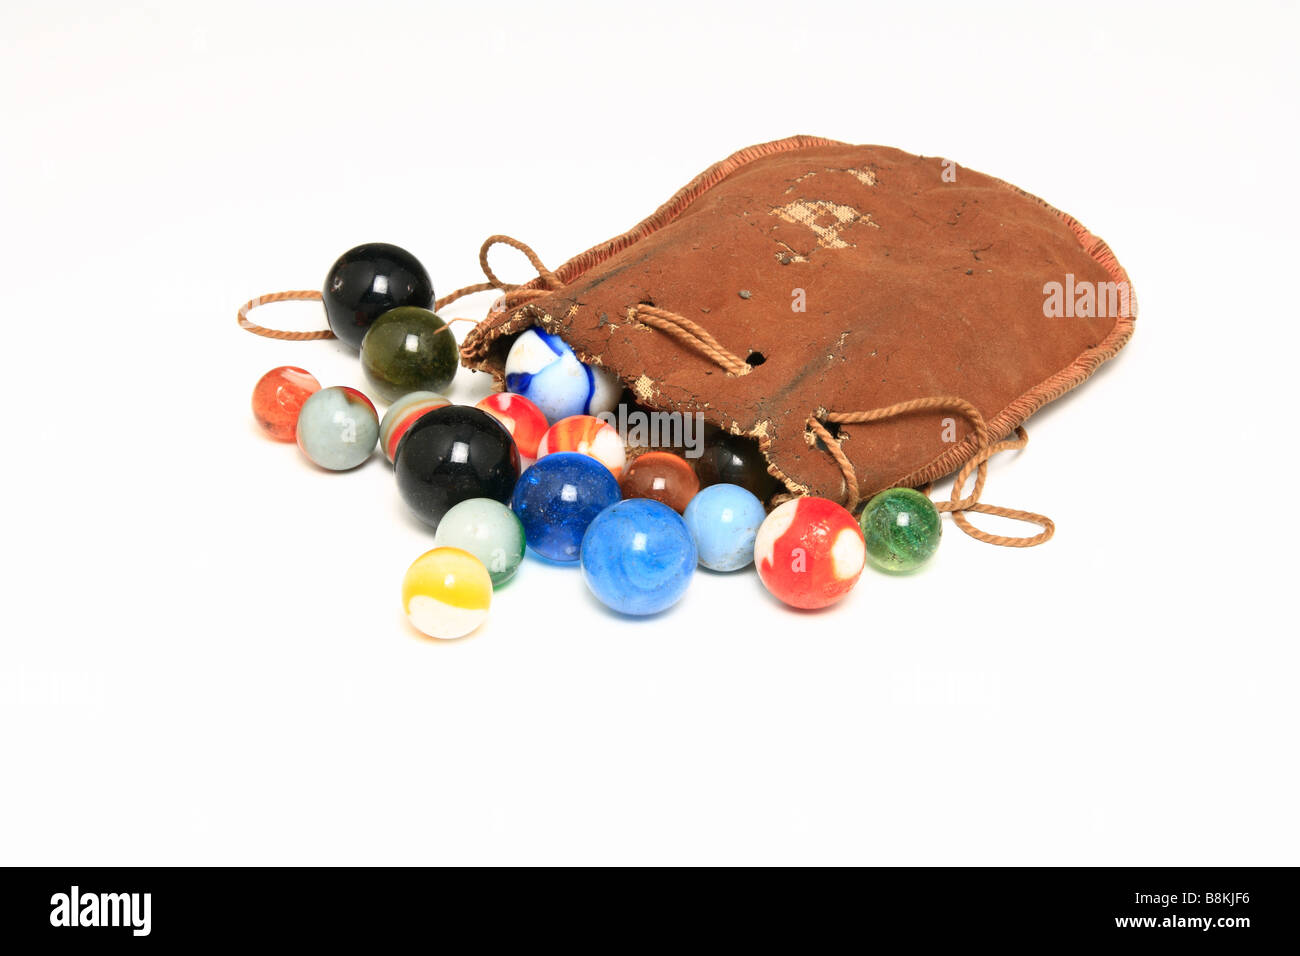 Collection of marbles spilt from a weathered leather pouch. - Stock Image